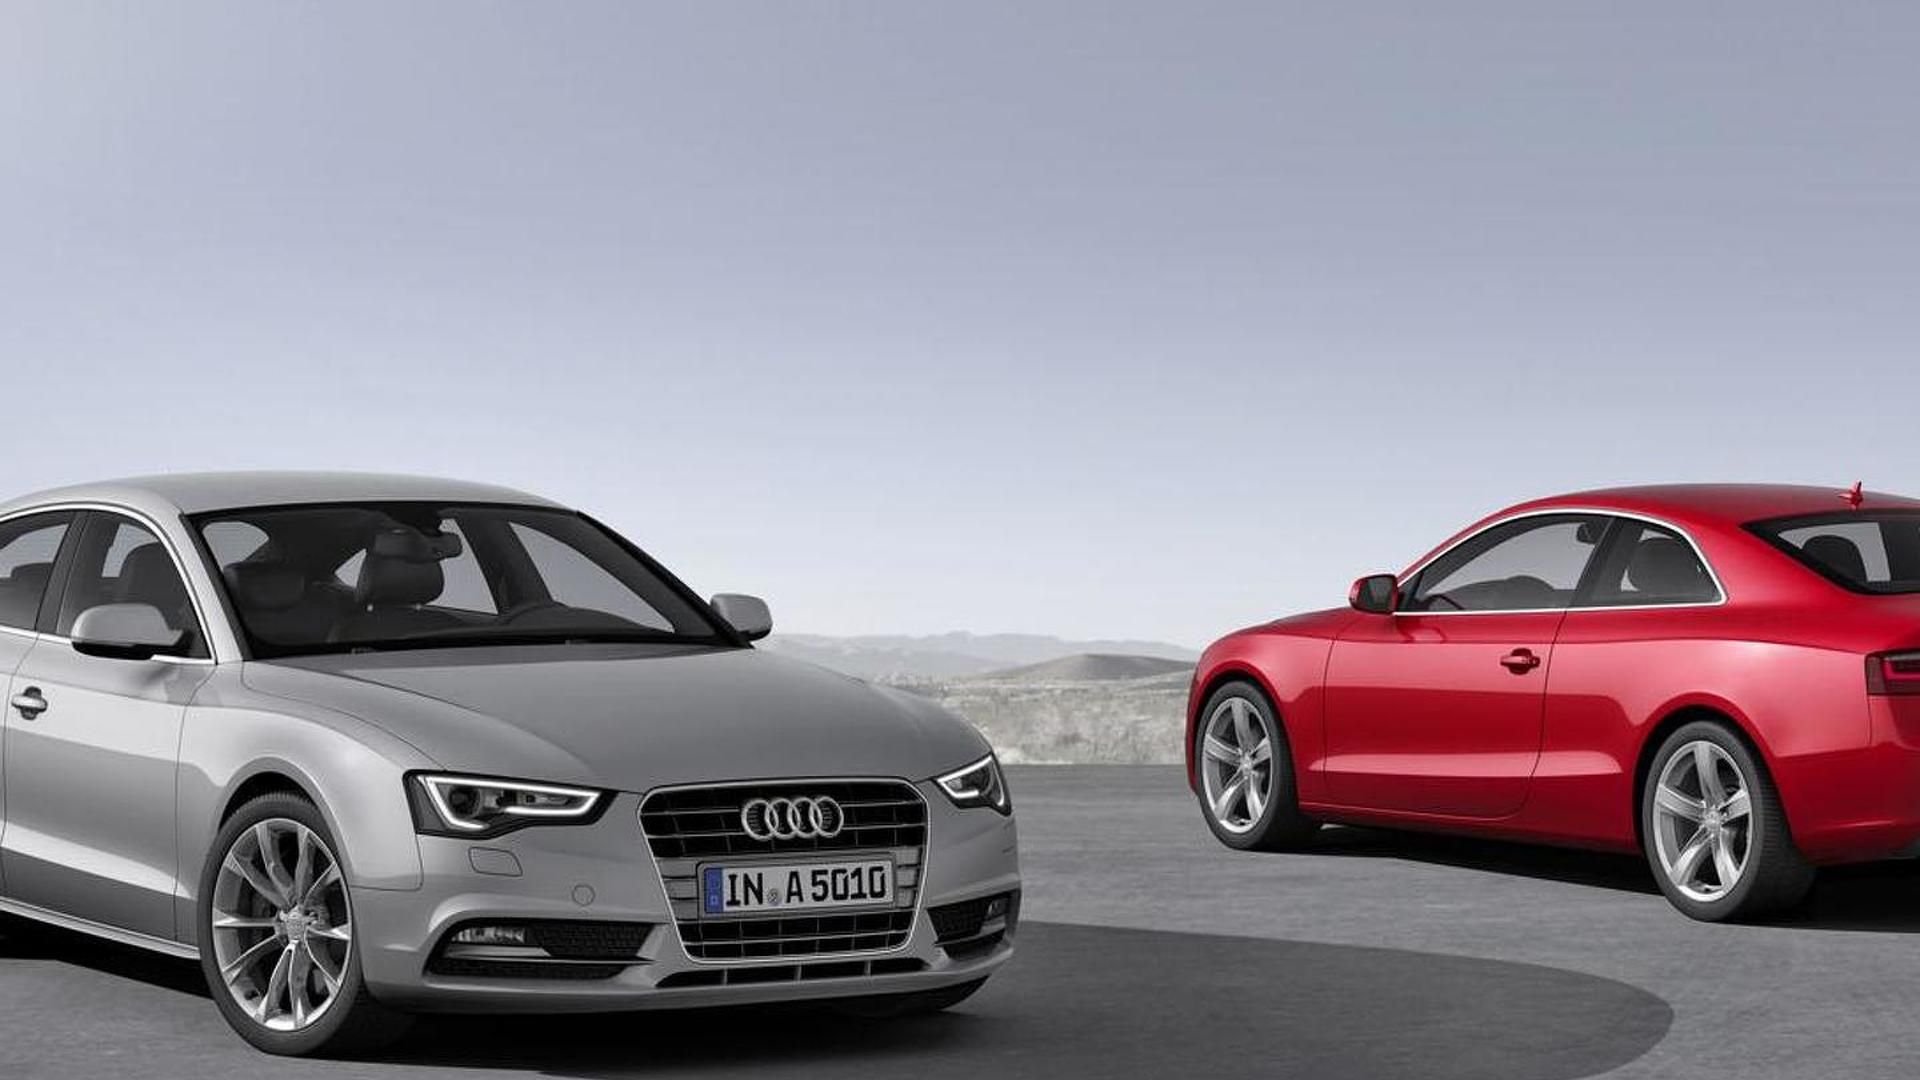 audi a4 a5 and a6 ultras announced feature a 2 0 liter tdi engine. Black Bedroom Furniture Sets. Home Design Ideas